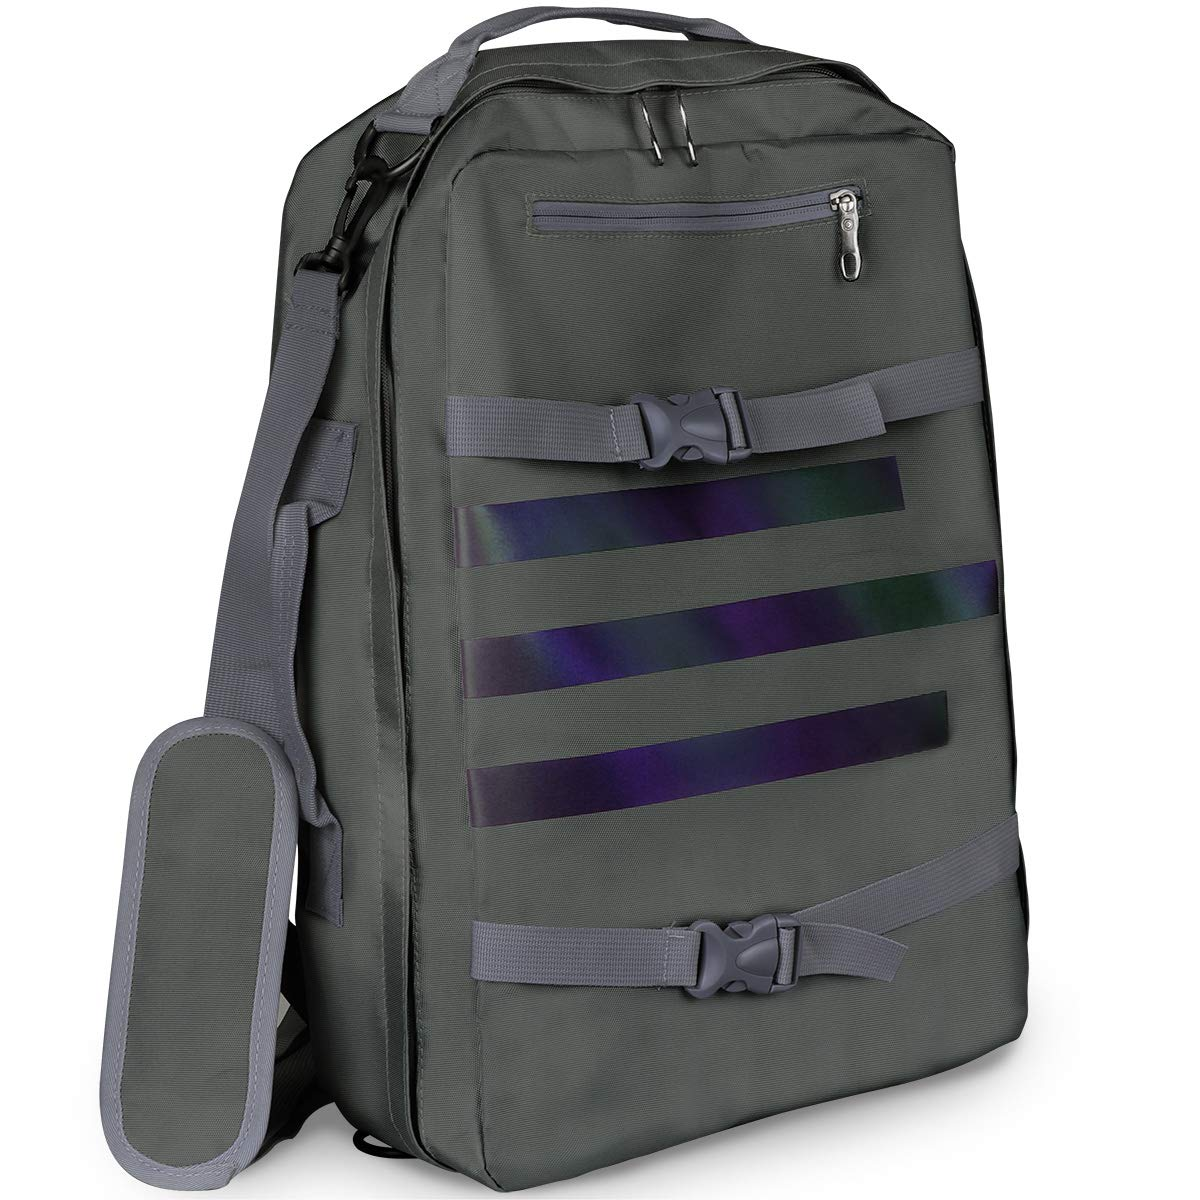 Backpack Unisex Casual Modern Bags Fashion School Backpack Lightweight Rucksack Large Capacity Outdoor Laptop Bags Dark Green